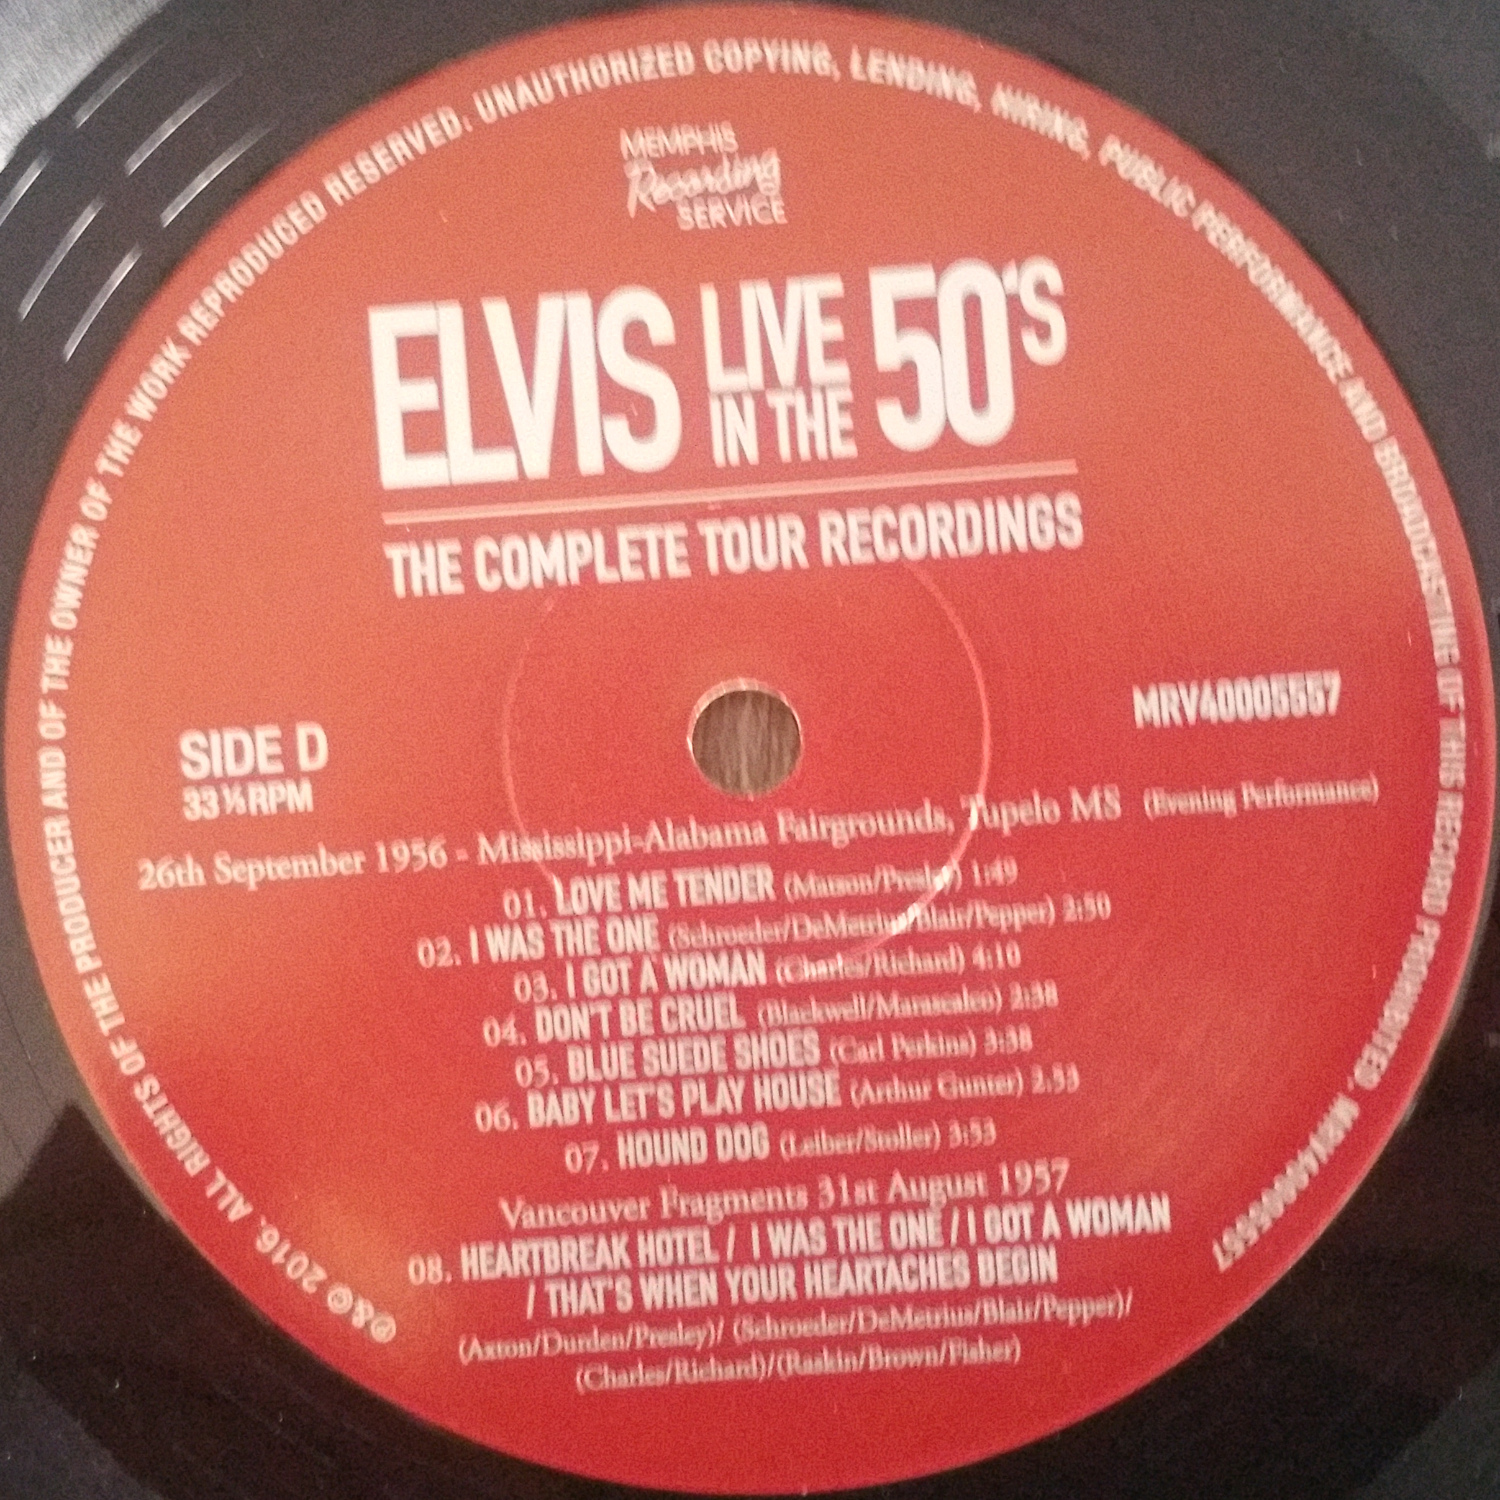 LIVE IN THE 50's (The Complete Tour Recordings) Liveinthe50s-thecompllhke2